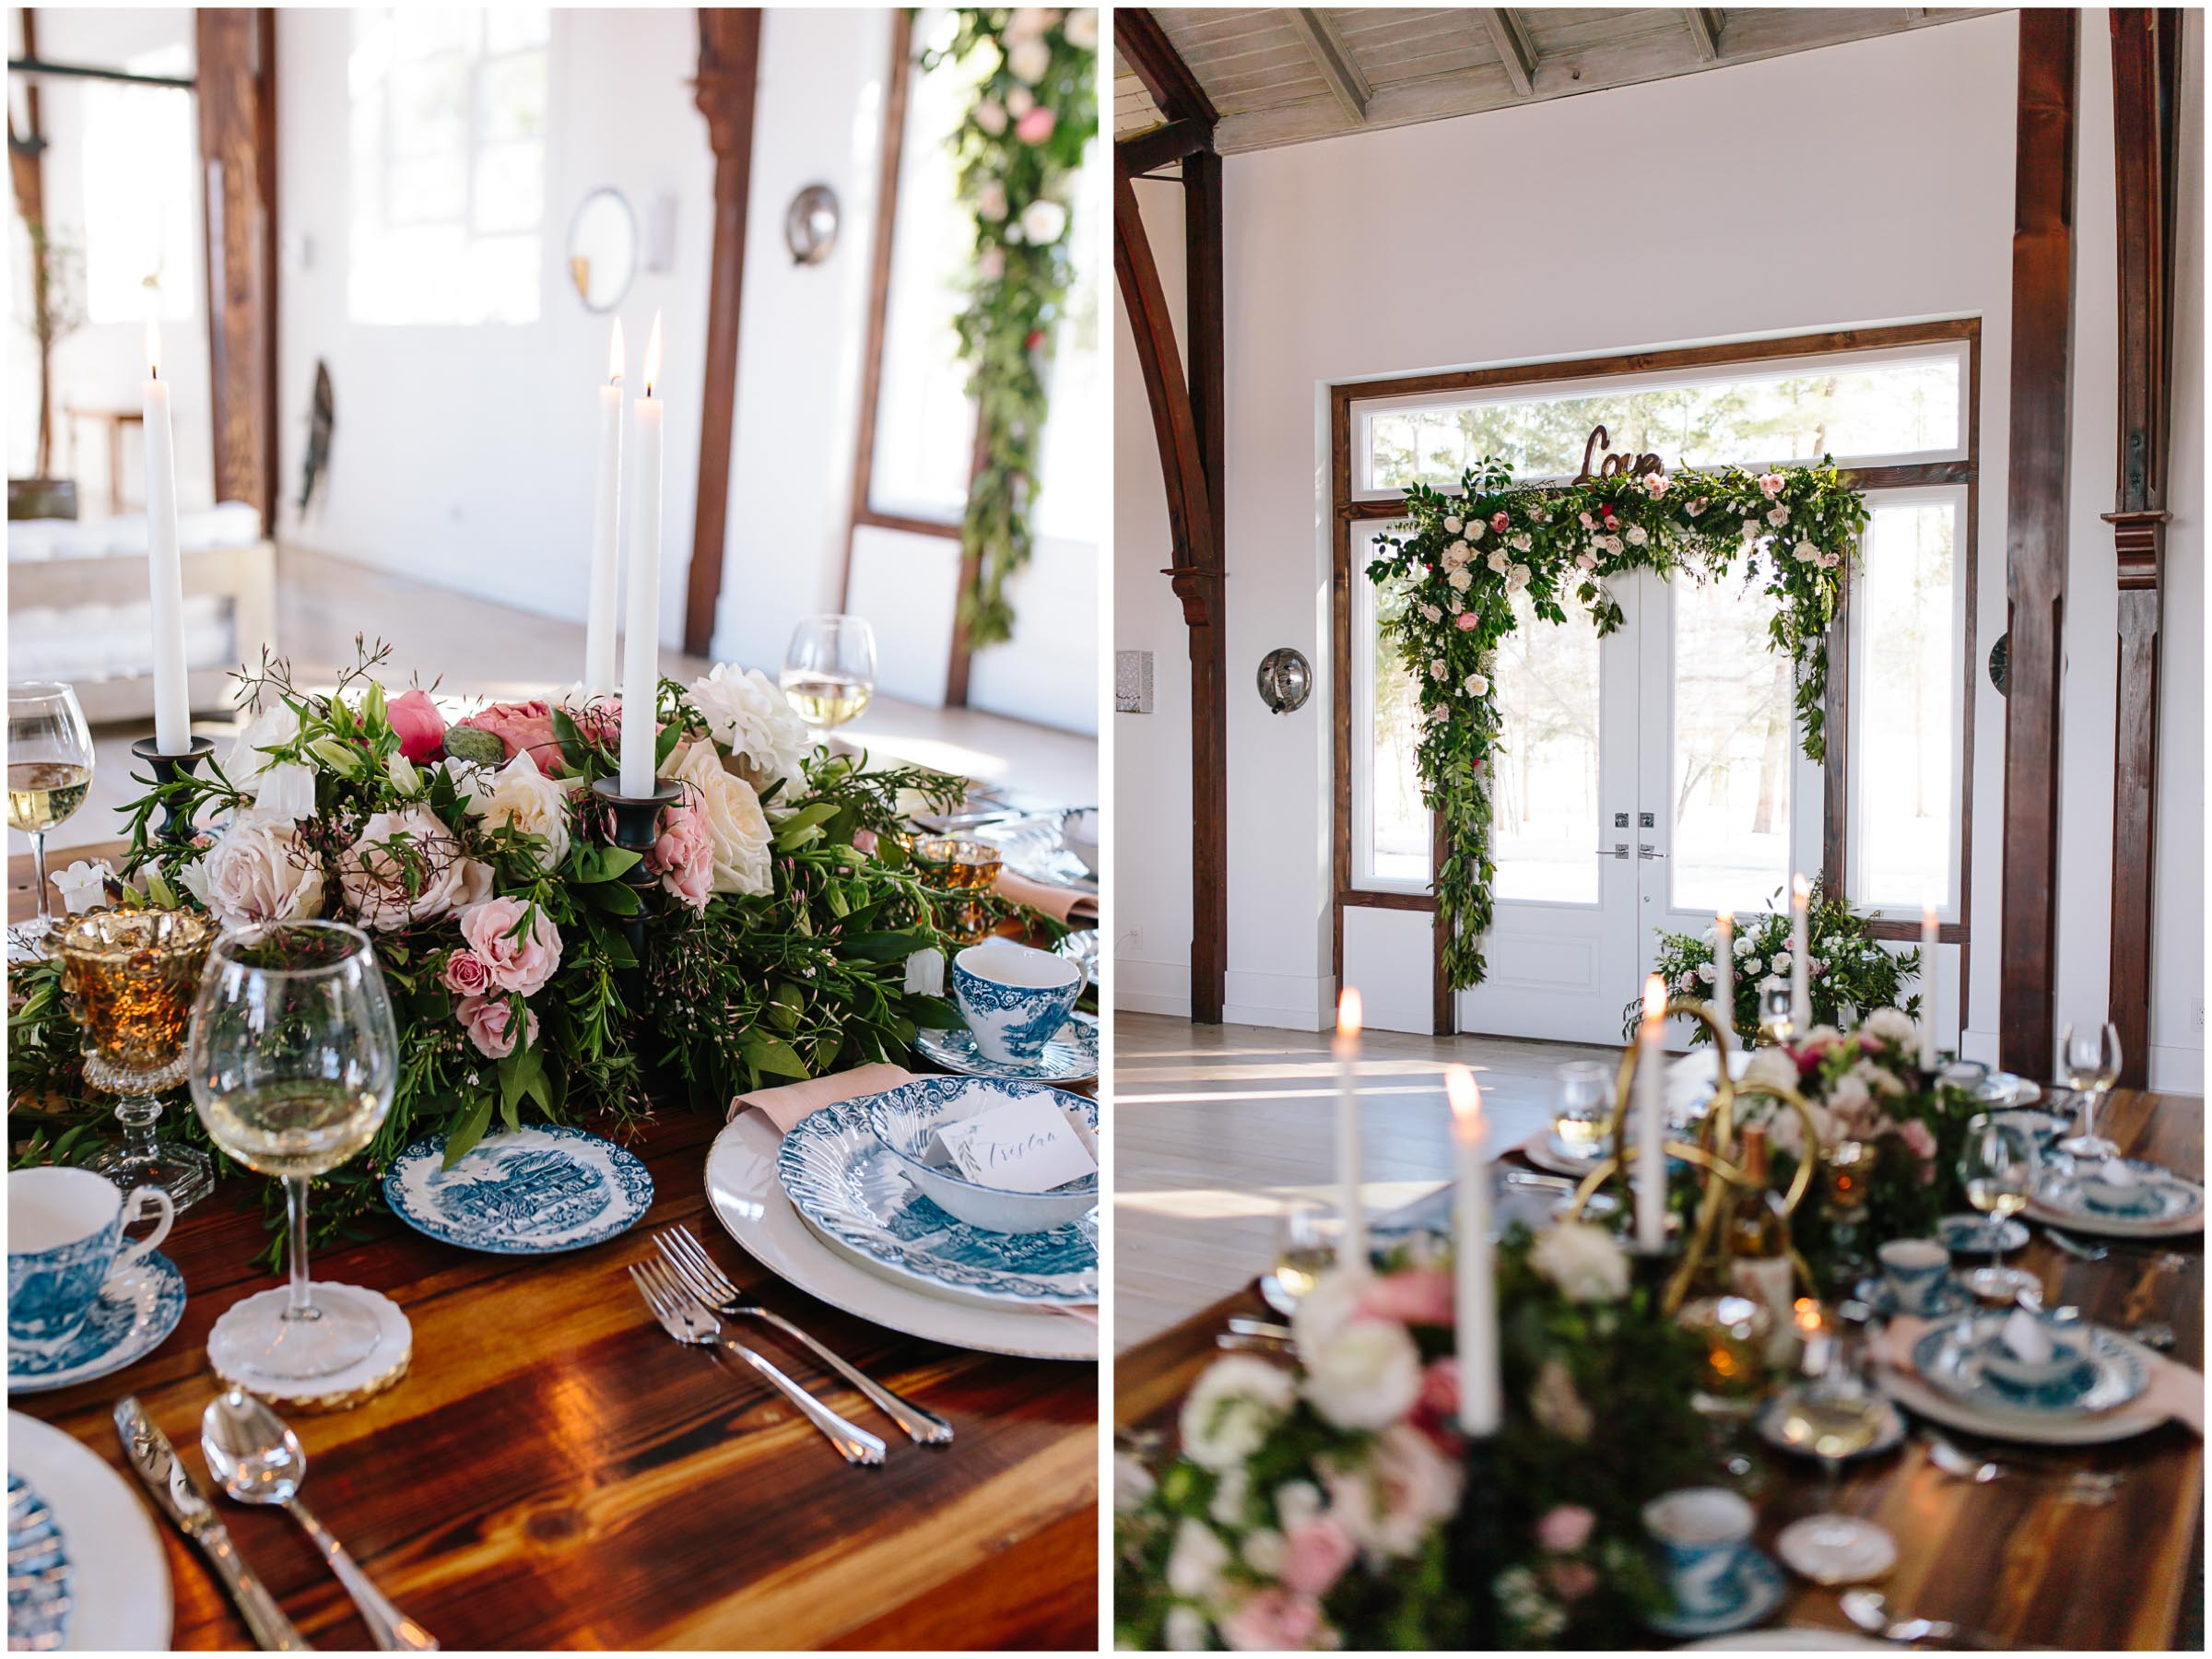 Intimate and romantic styled wedding photography in Lee, Massachusetts in the Berkshires - tablescape